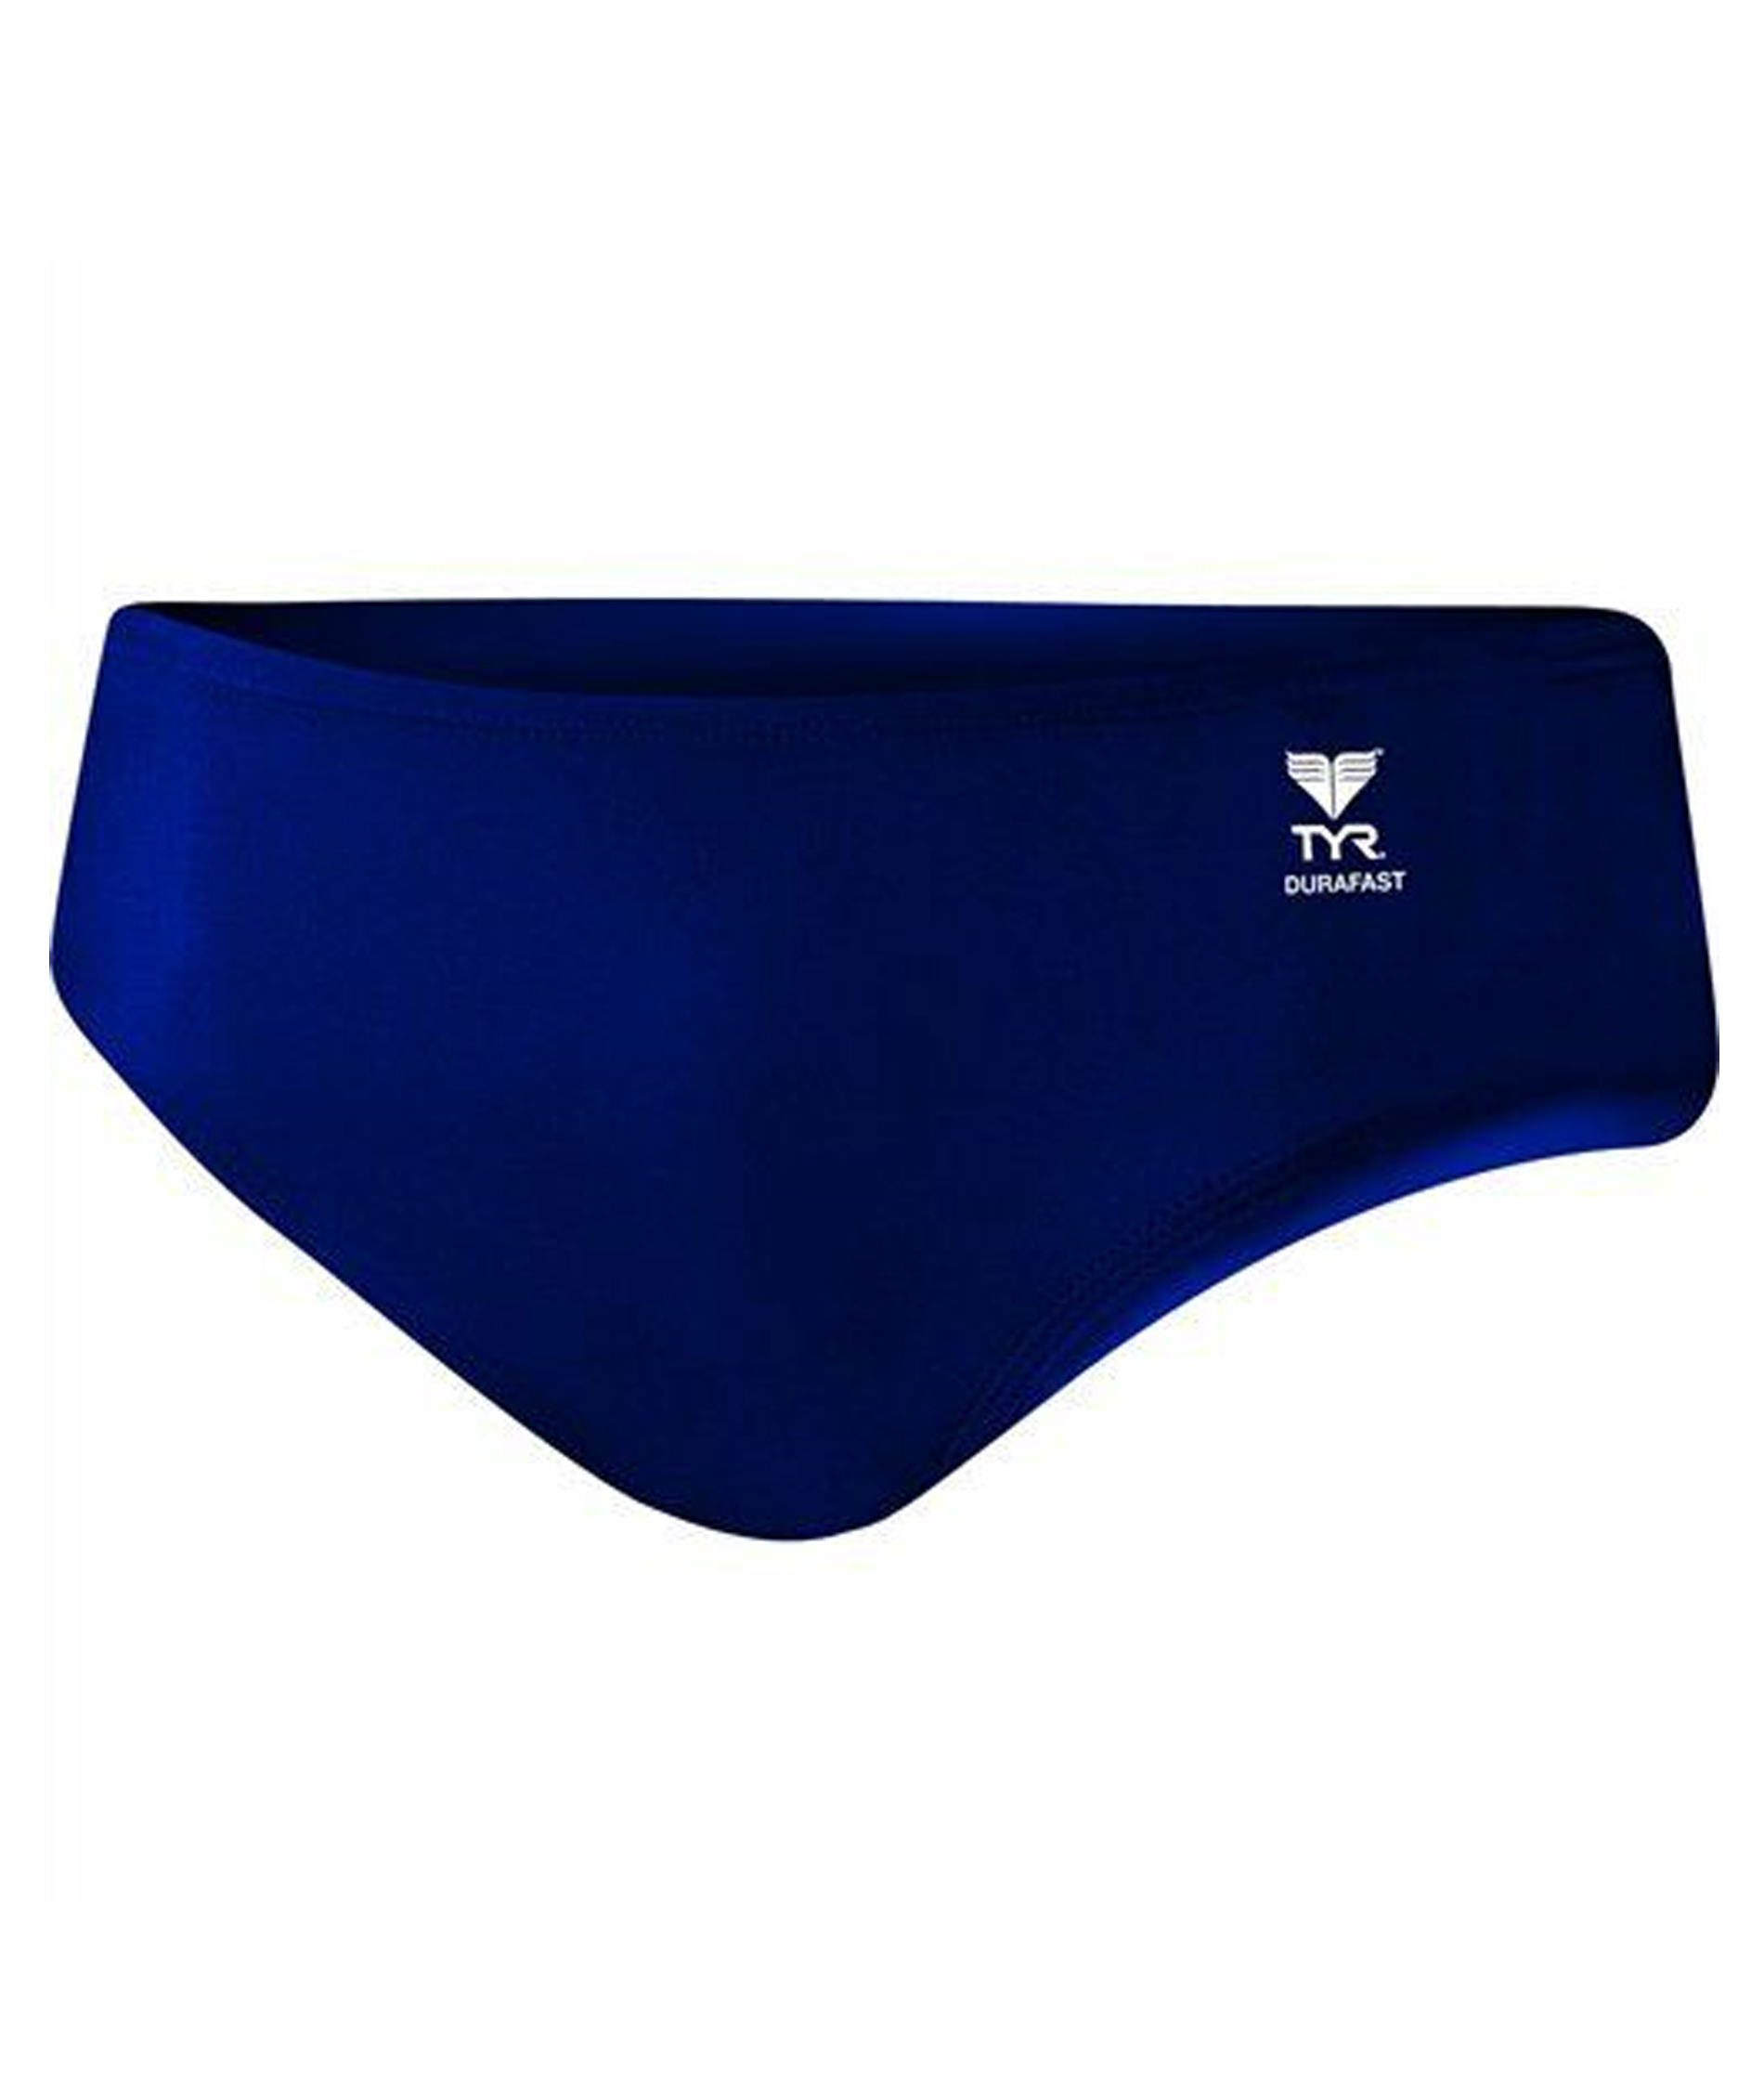 TYR Boys Durafast Elite Solid Racer Brief - Navy